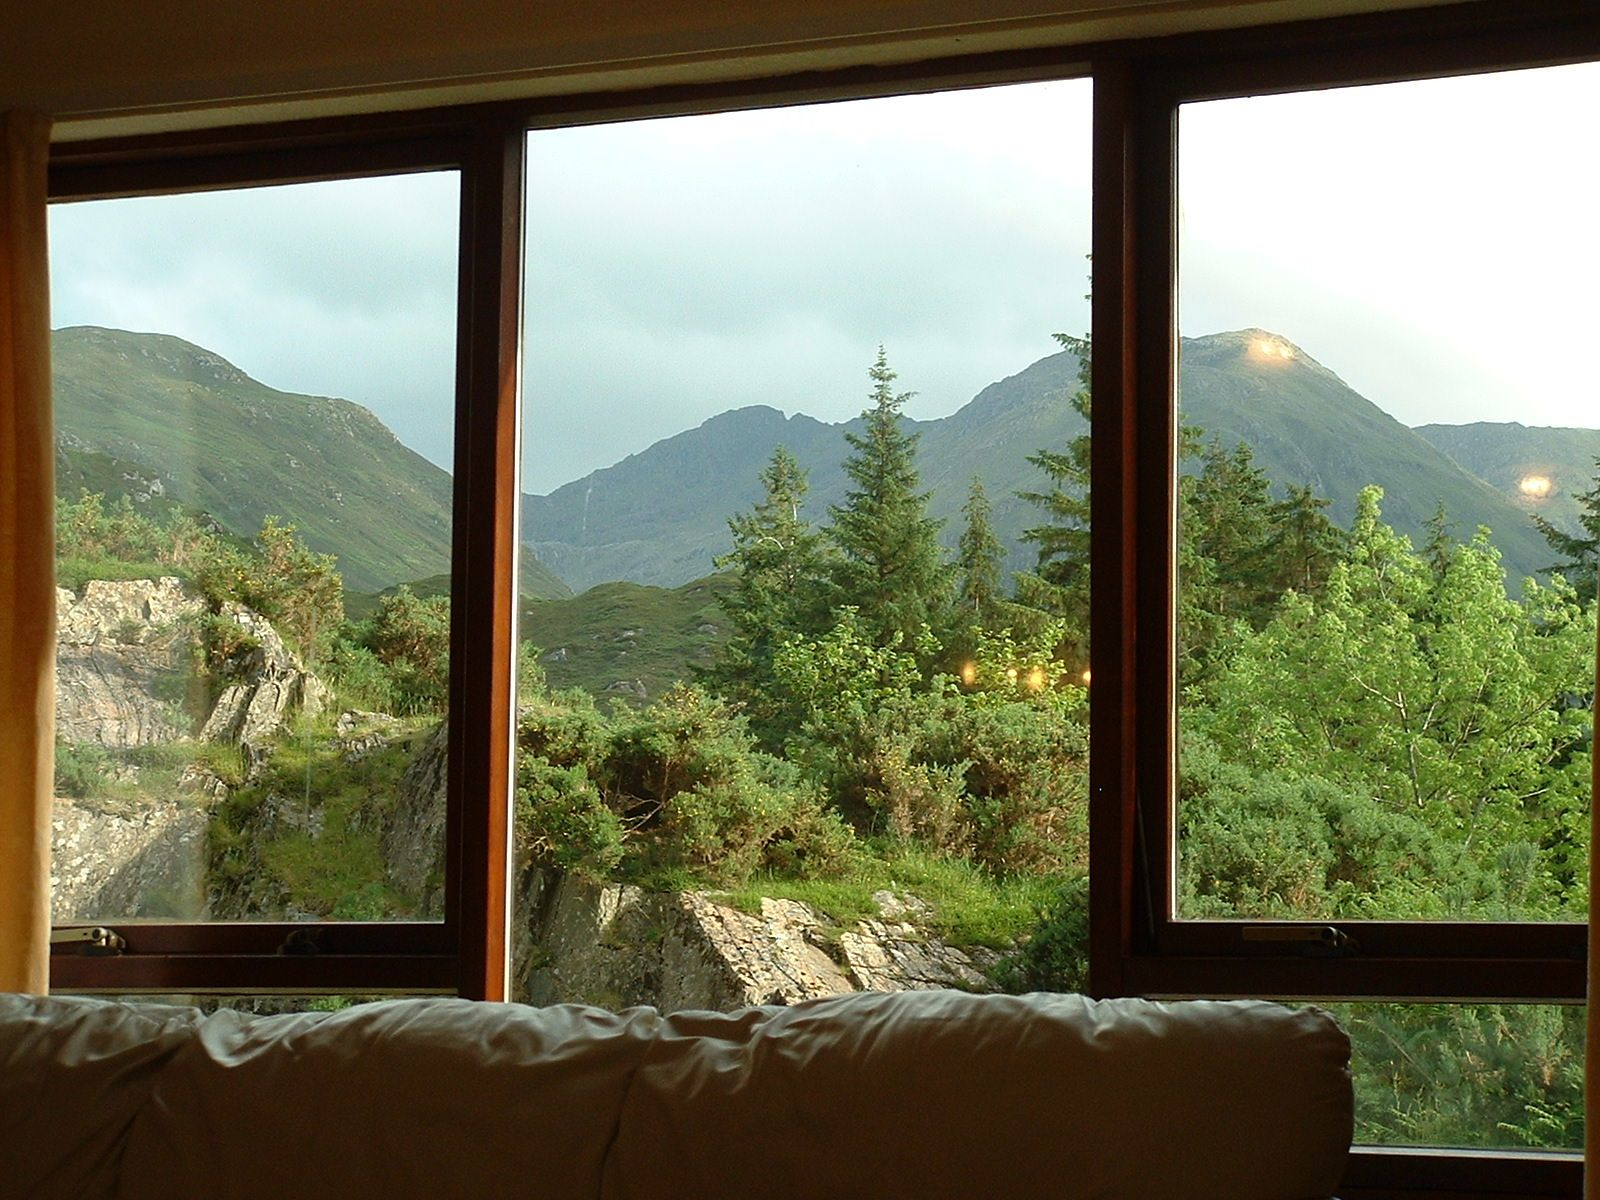 Superb Mountain View Windows #2: Looking Out